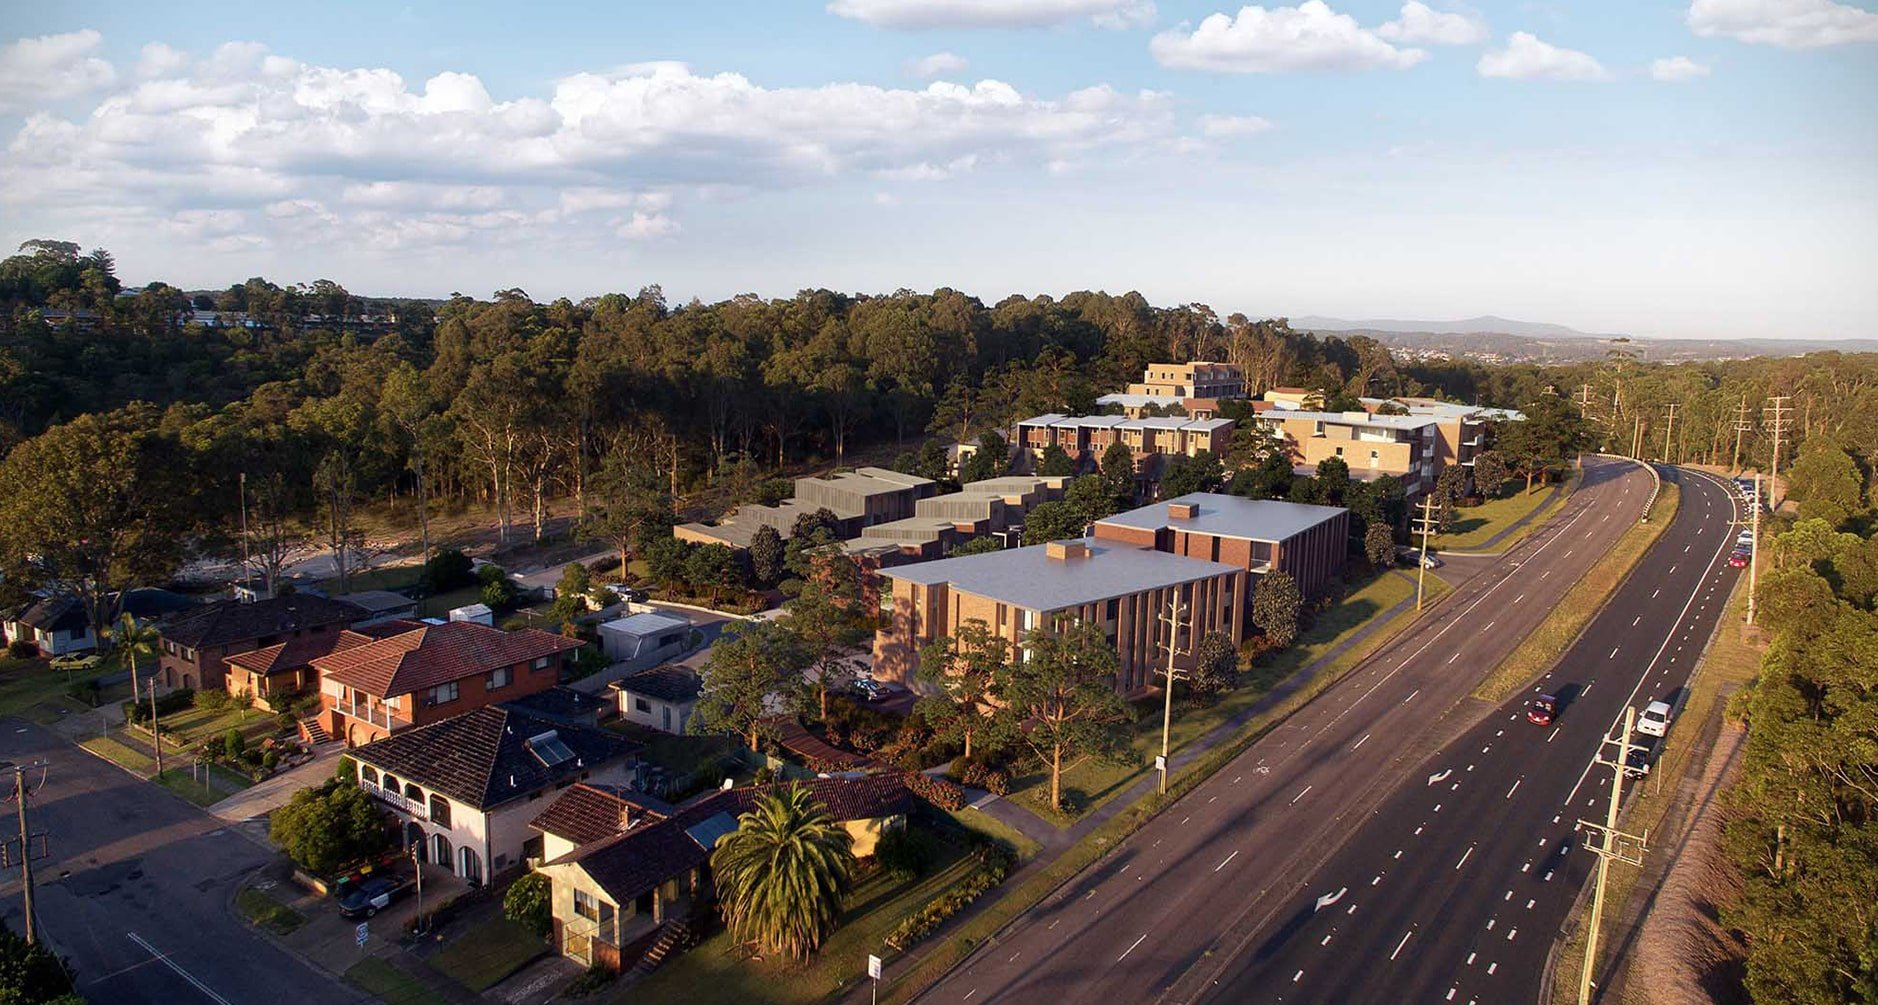 The Grounds At Callaghan - https://www.newcastleapartments.com.au/wp-content/uploads/2019/12/the-grounds-at-callaghan.jpg